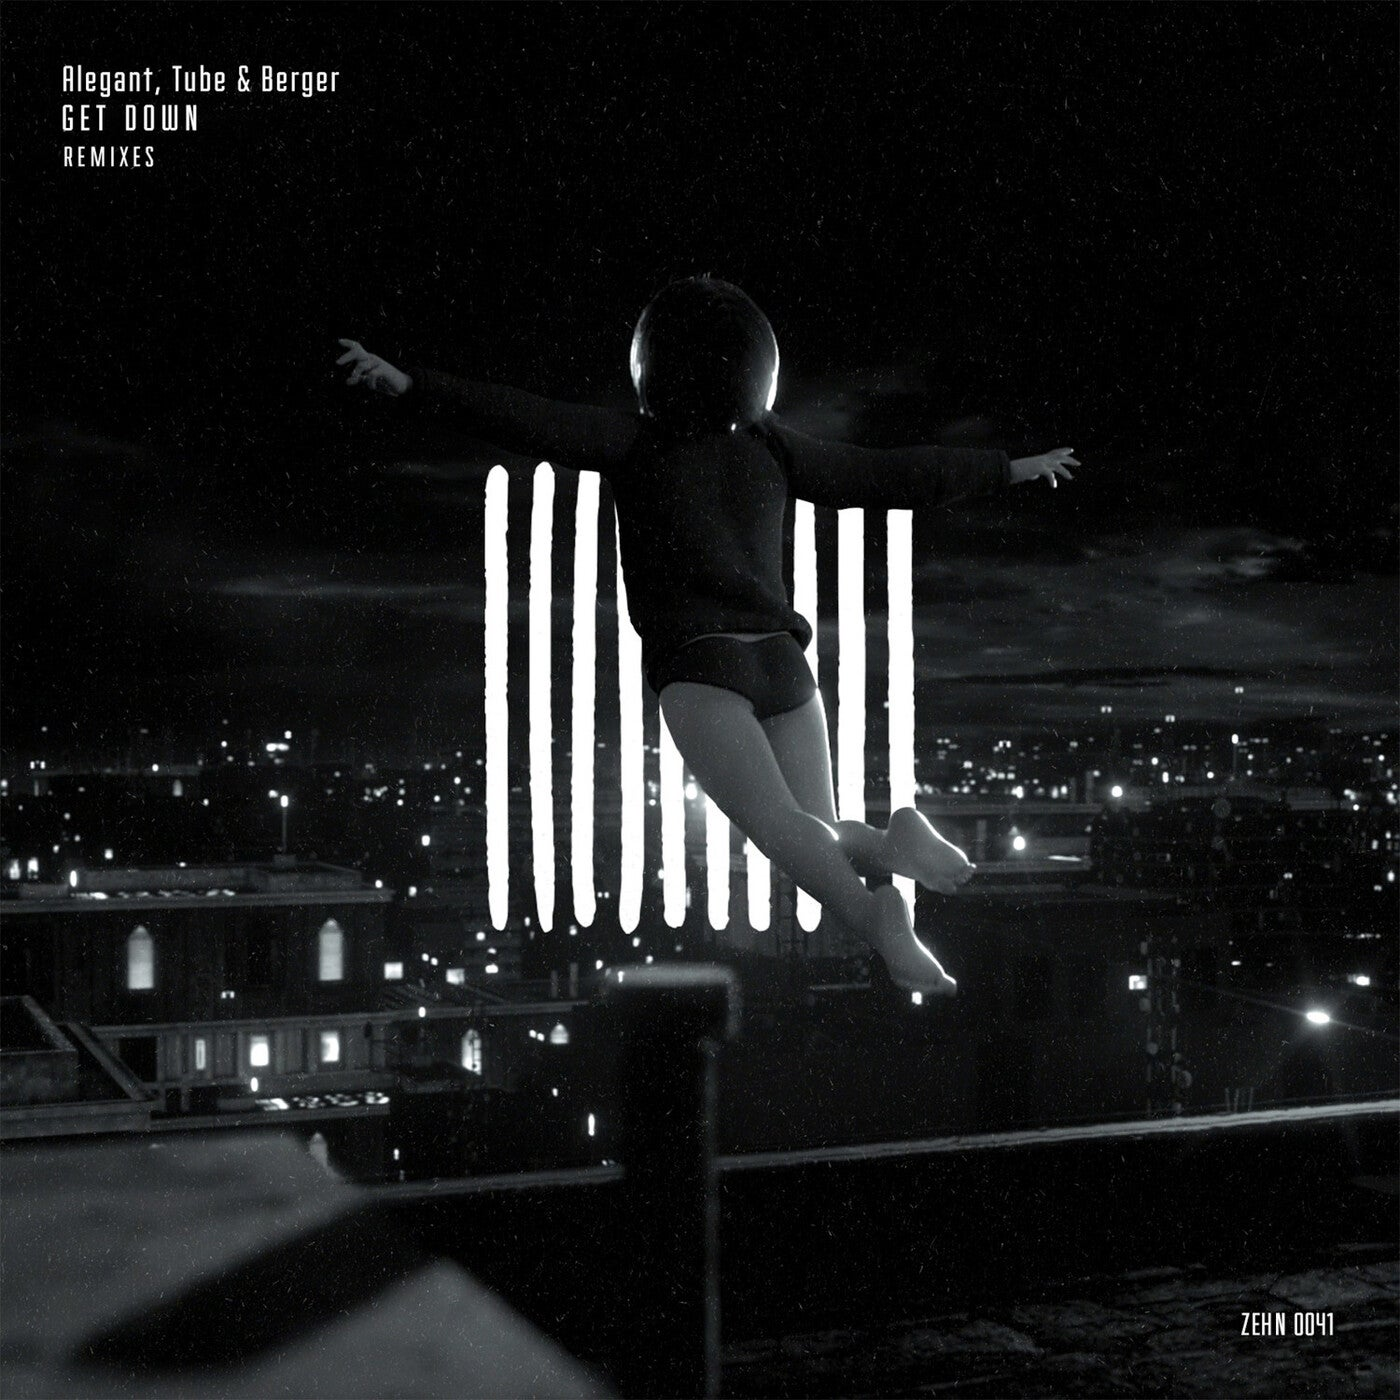 Download Get Down (Remixes) on Electrobuzz